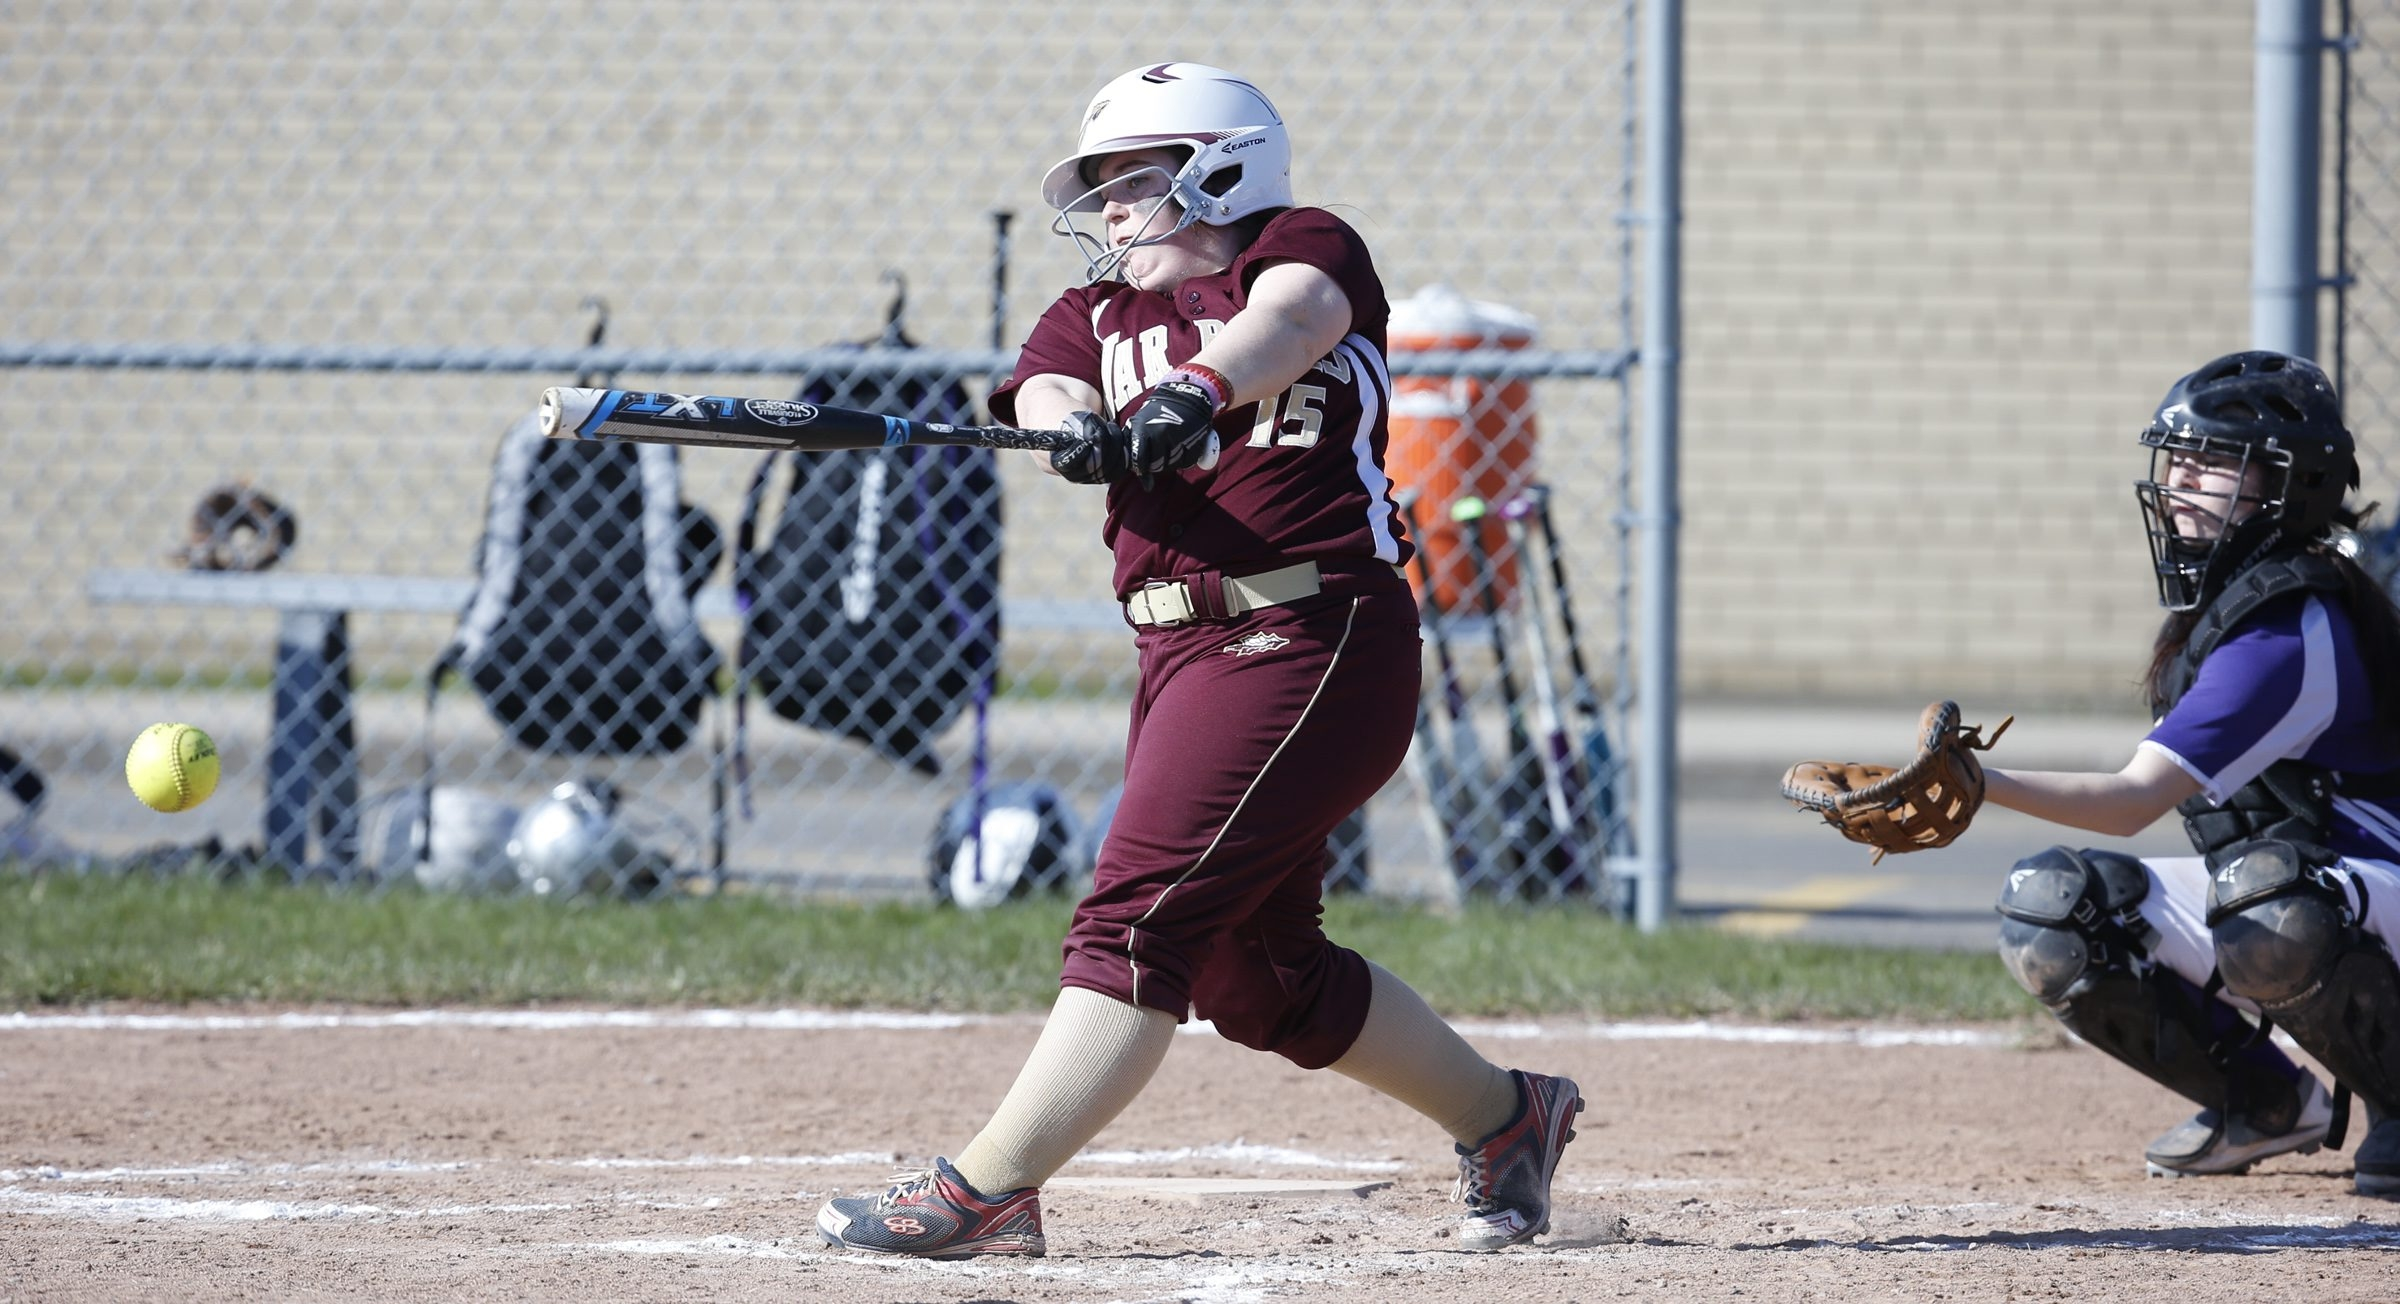 Cheektowaga's Morgan Wozniak plated three runs with this hit in the first inning Friday in an ECIC III contest against Springville. The Warriors improved to 2-0 thanks to a 12-9 victory.